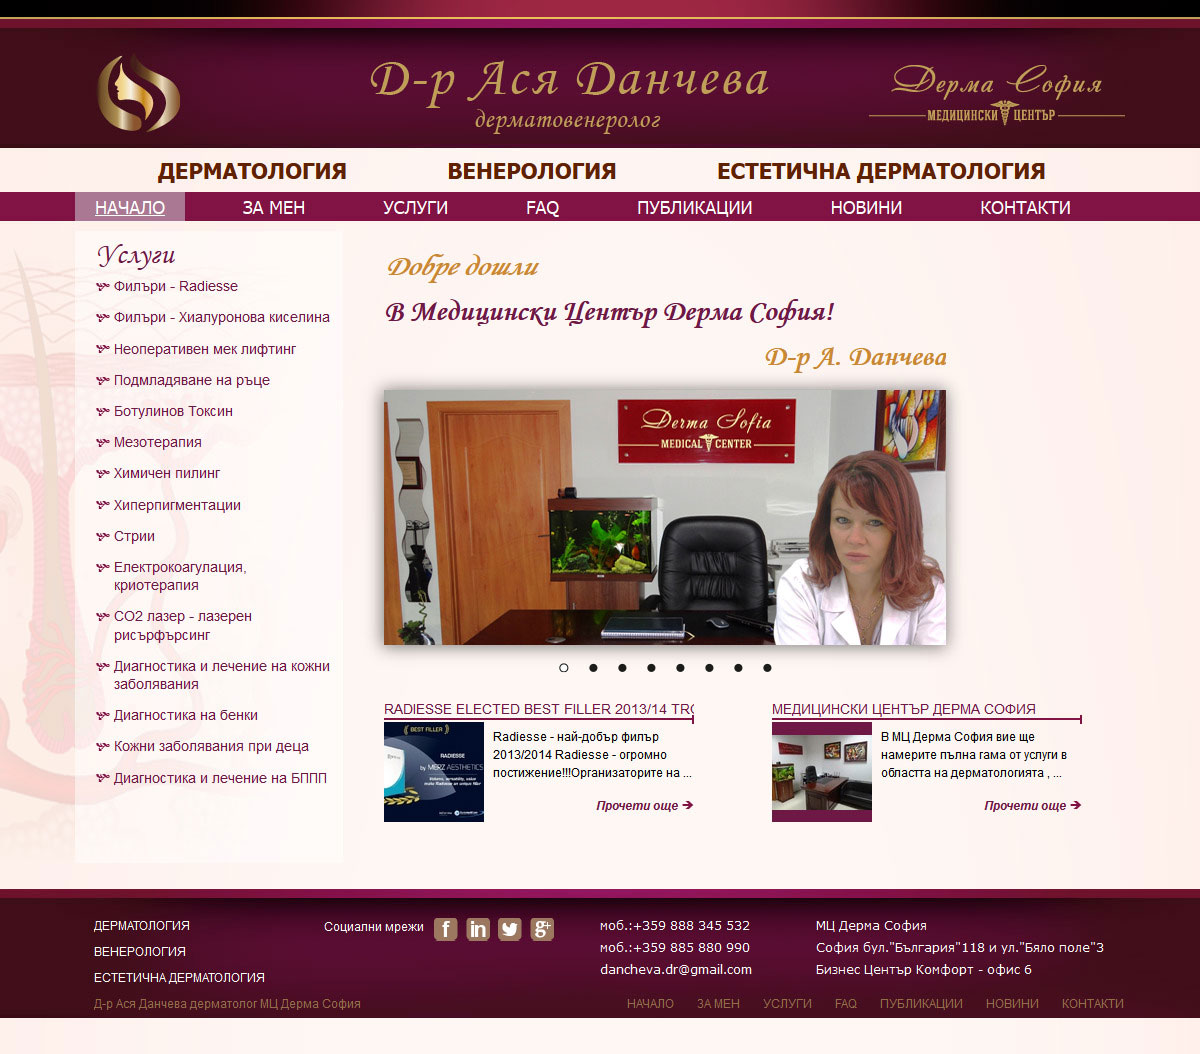 drdancheva.com